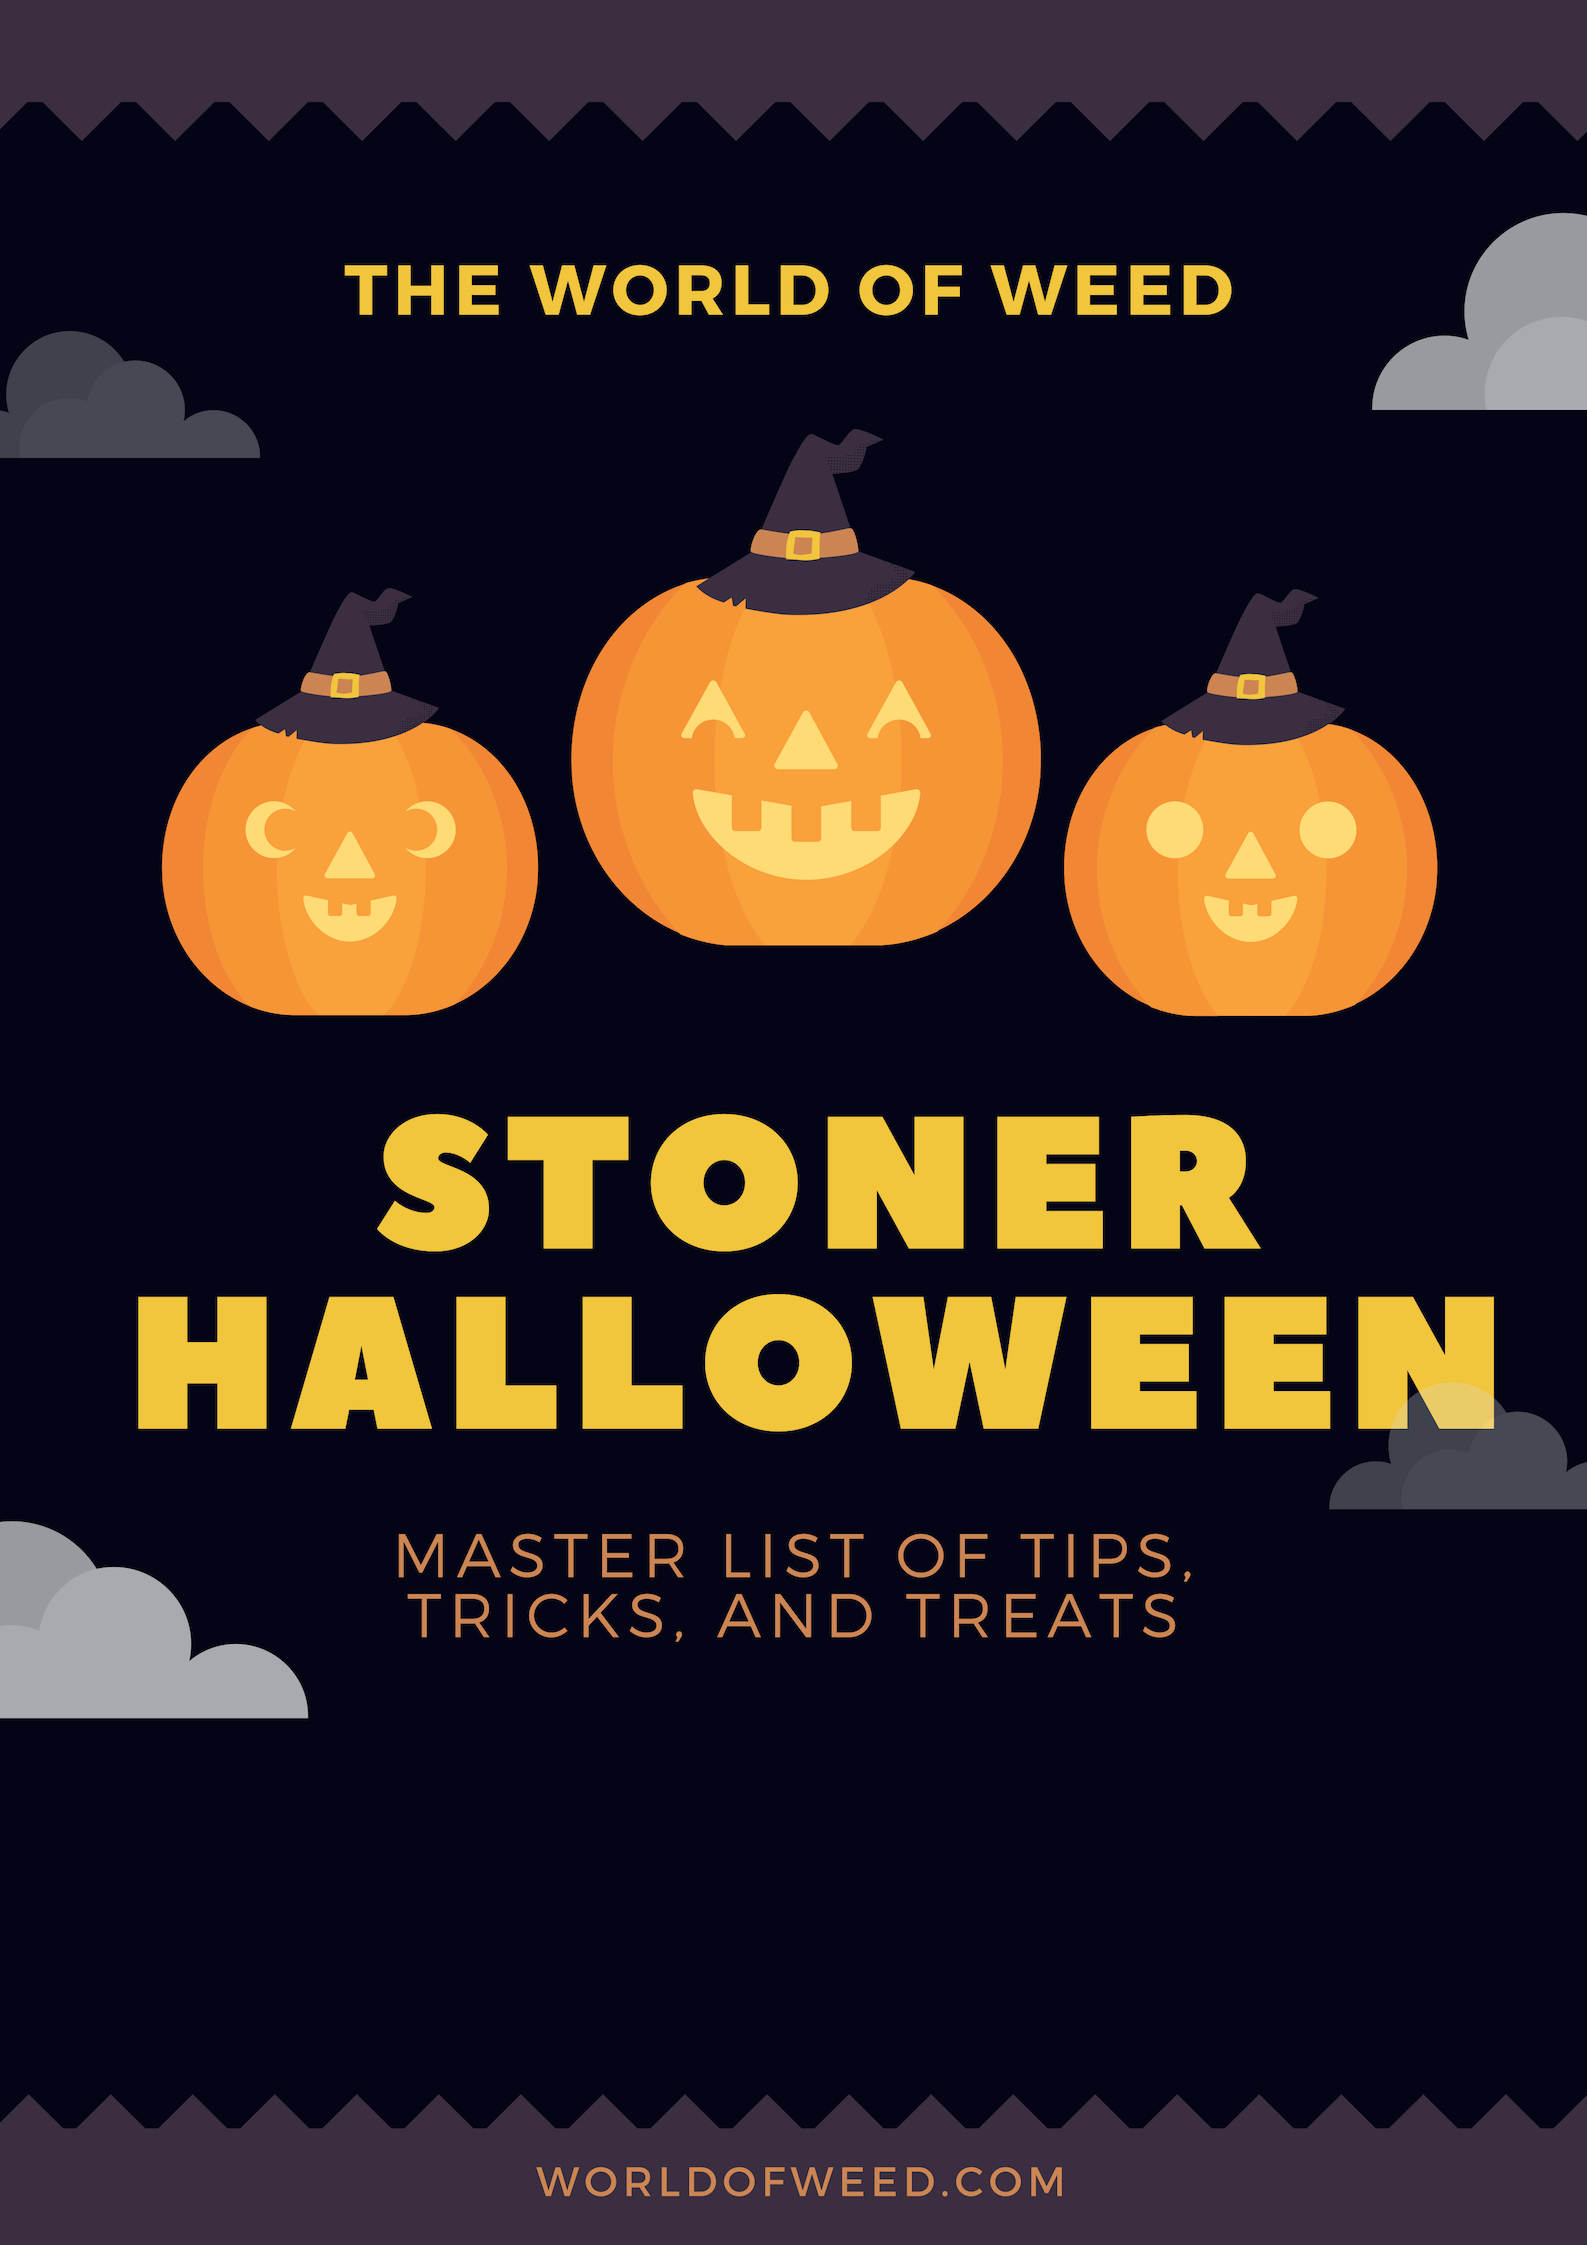 The World of Weed Master List of Stoner Halloween Tips, Tricks, and Treats